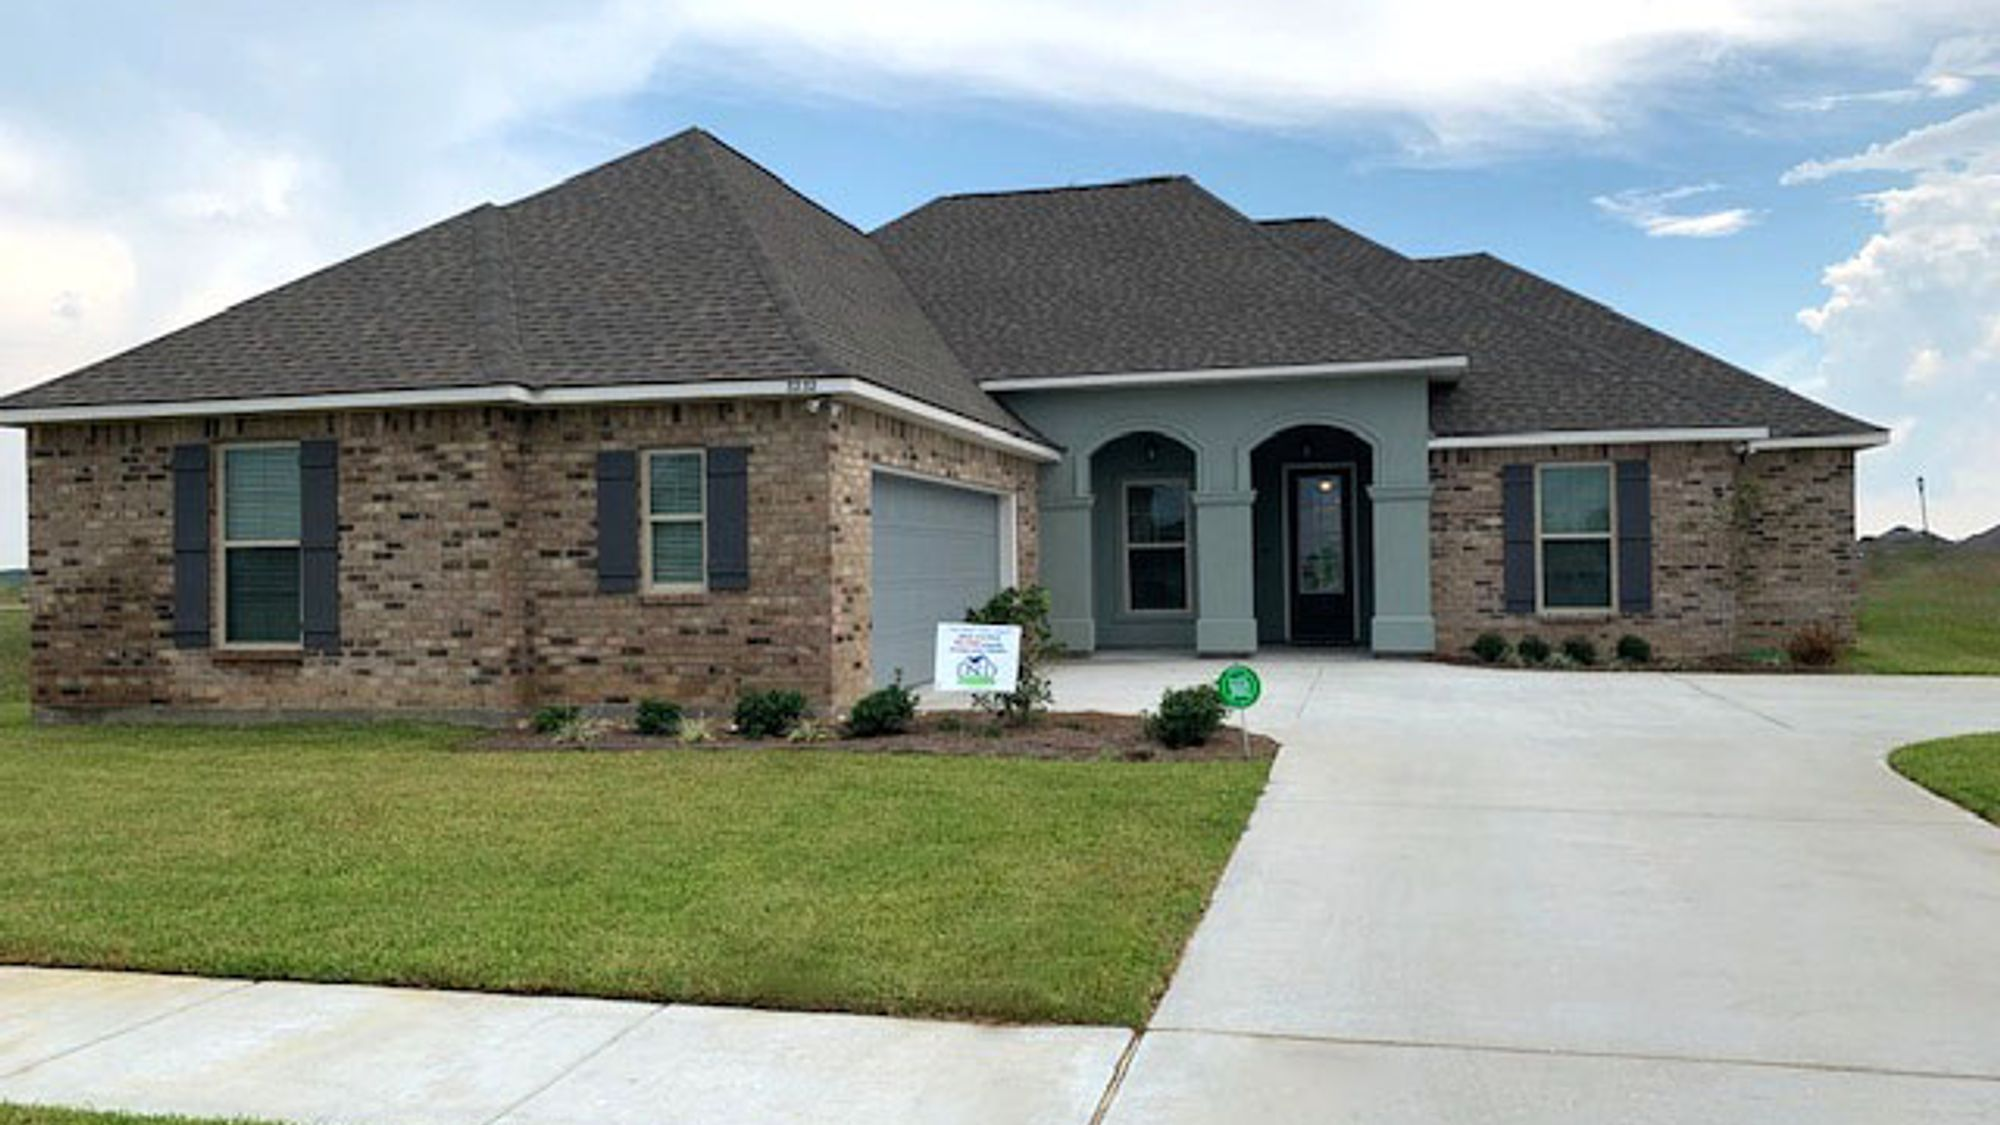 Model Home Exterior - DSLD Homes in Lake Charles - The Cove at Morganfield